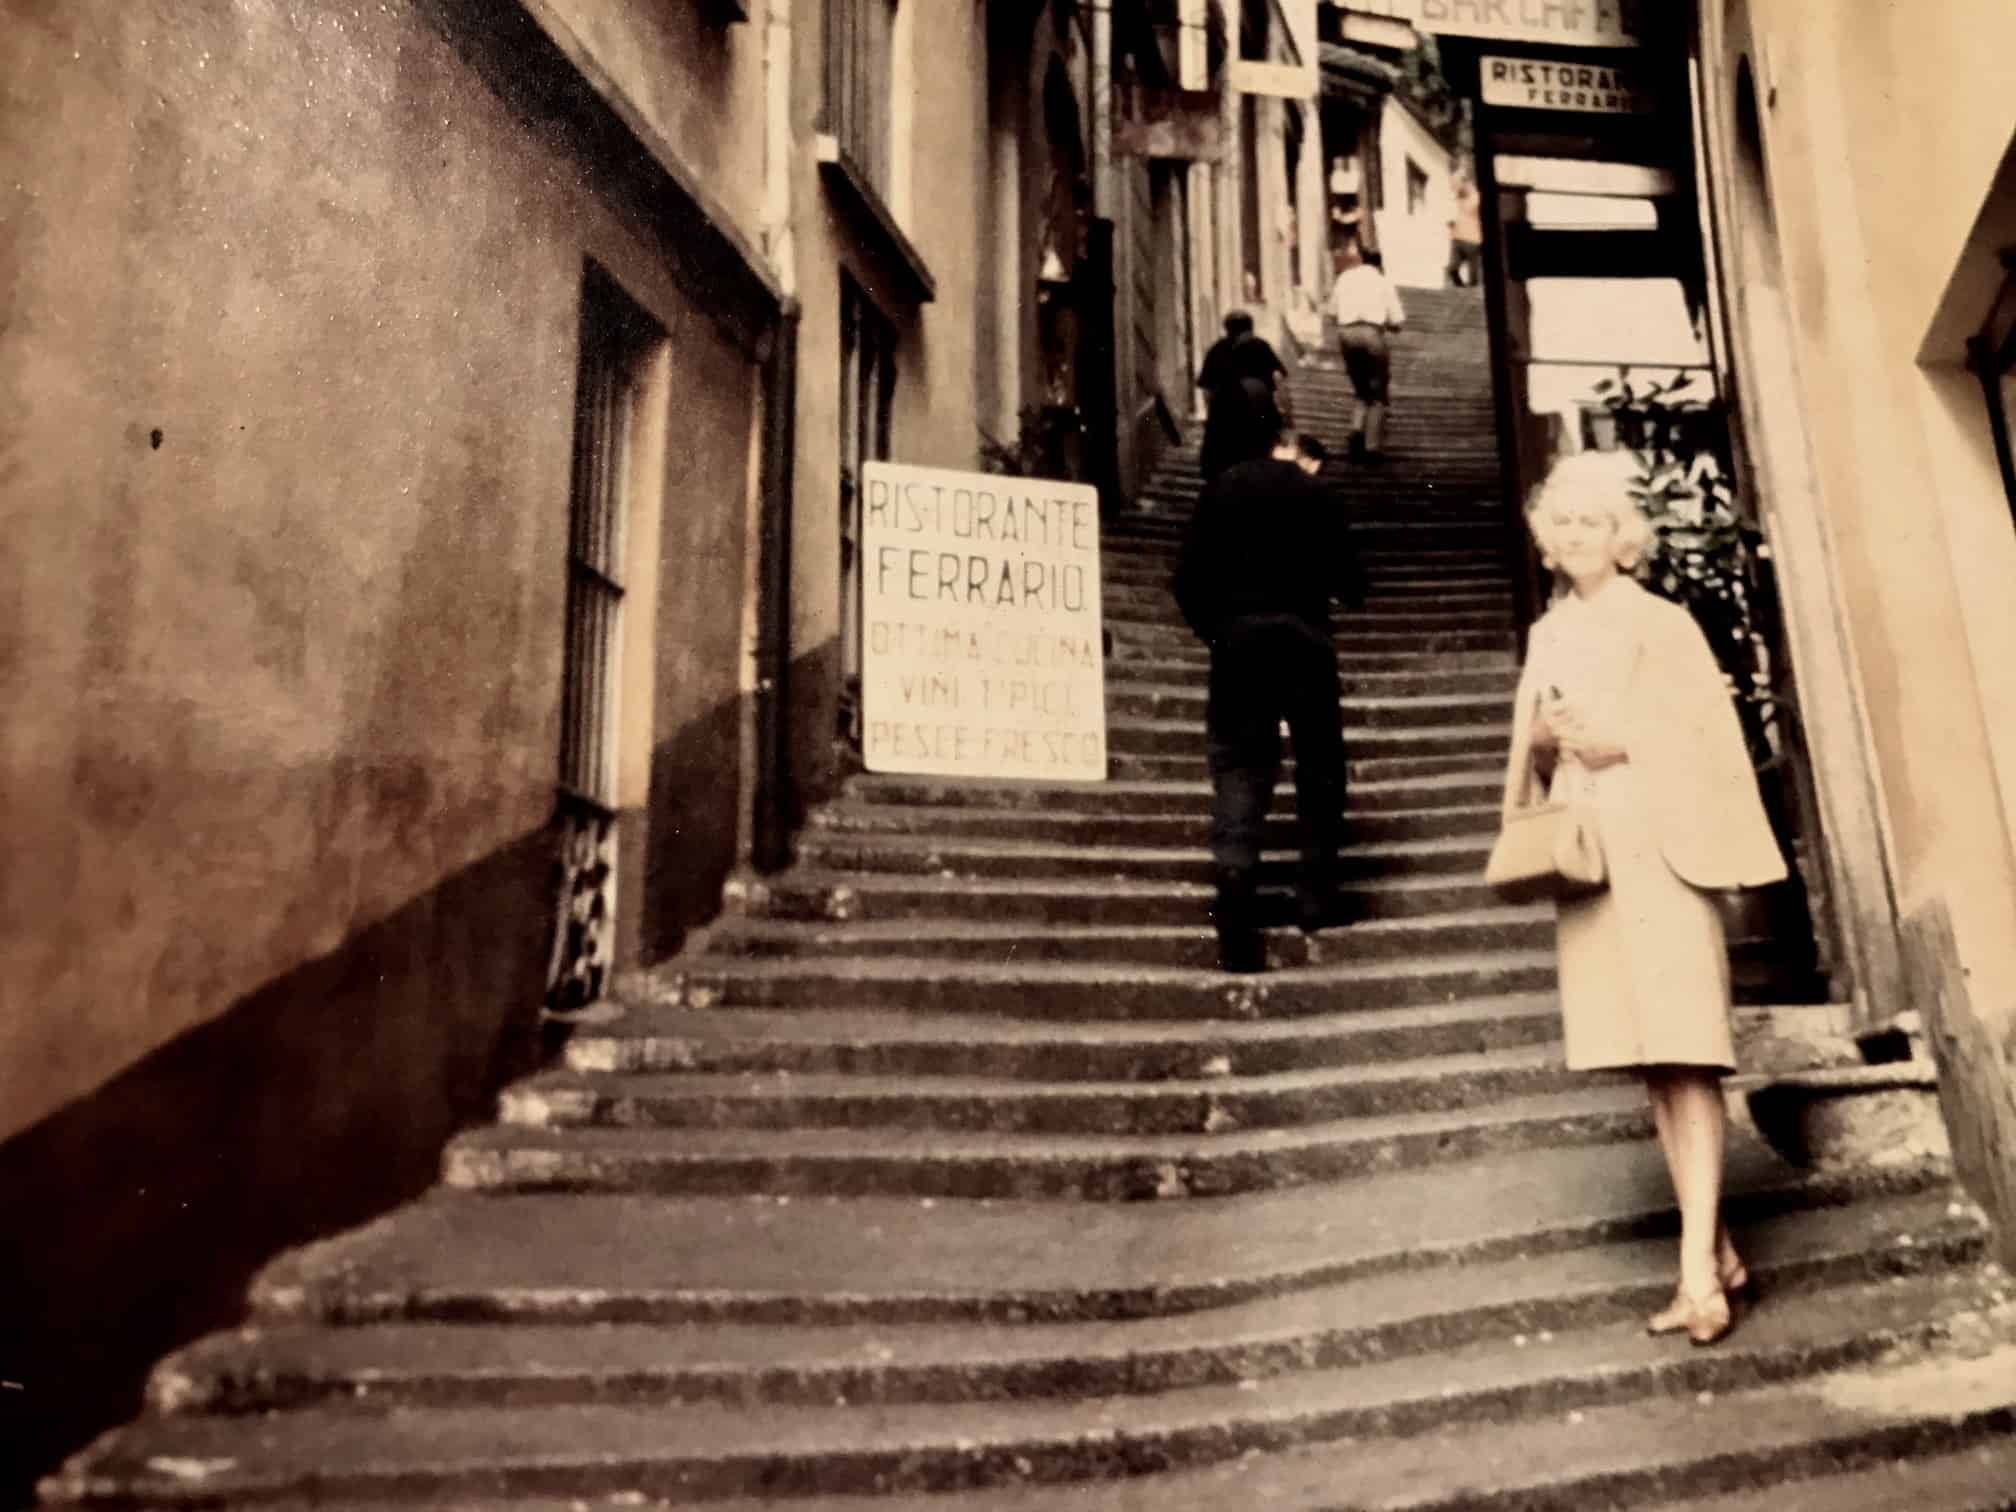 My Grandmother in Italy in the 1950's on the steps outside a restaurant.